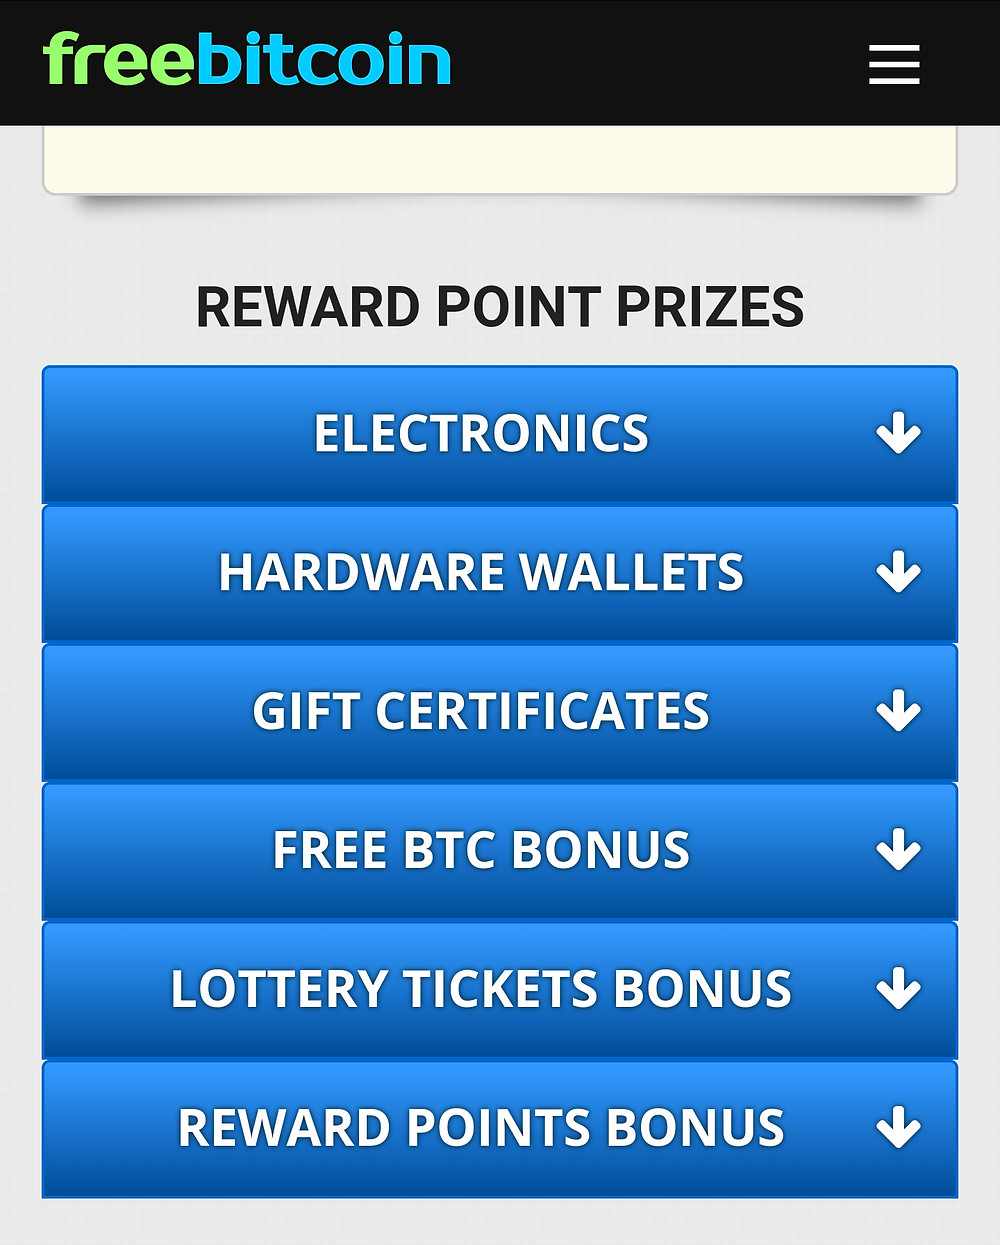 claim free bitcoin at freebitco.in with games like dice, lottery, rewards and even earn interest with your bitcoin